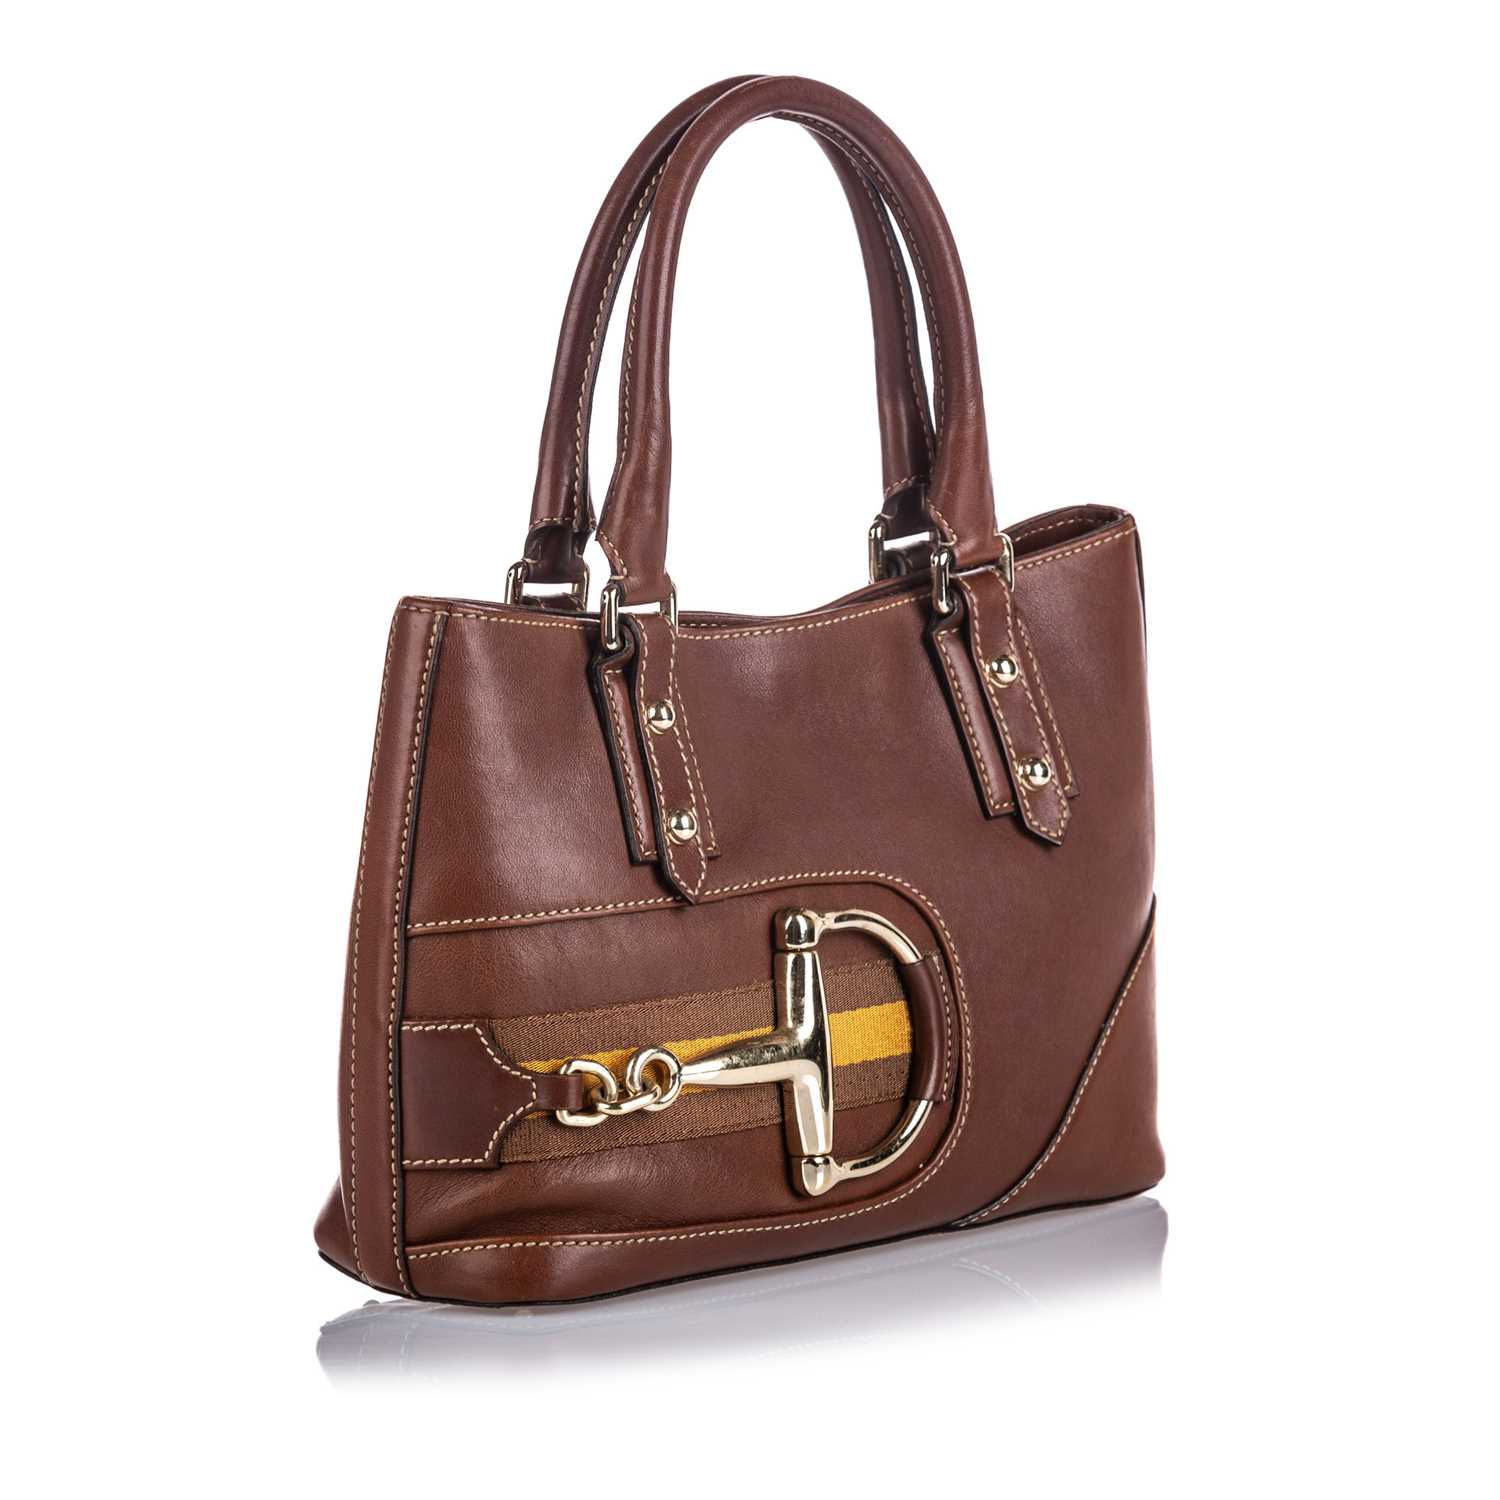 424 - A Gucci brown leather 'Hasler' tote,